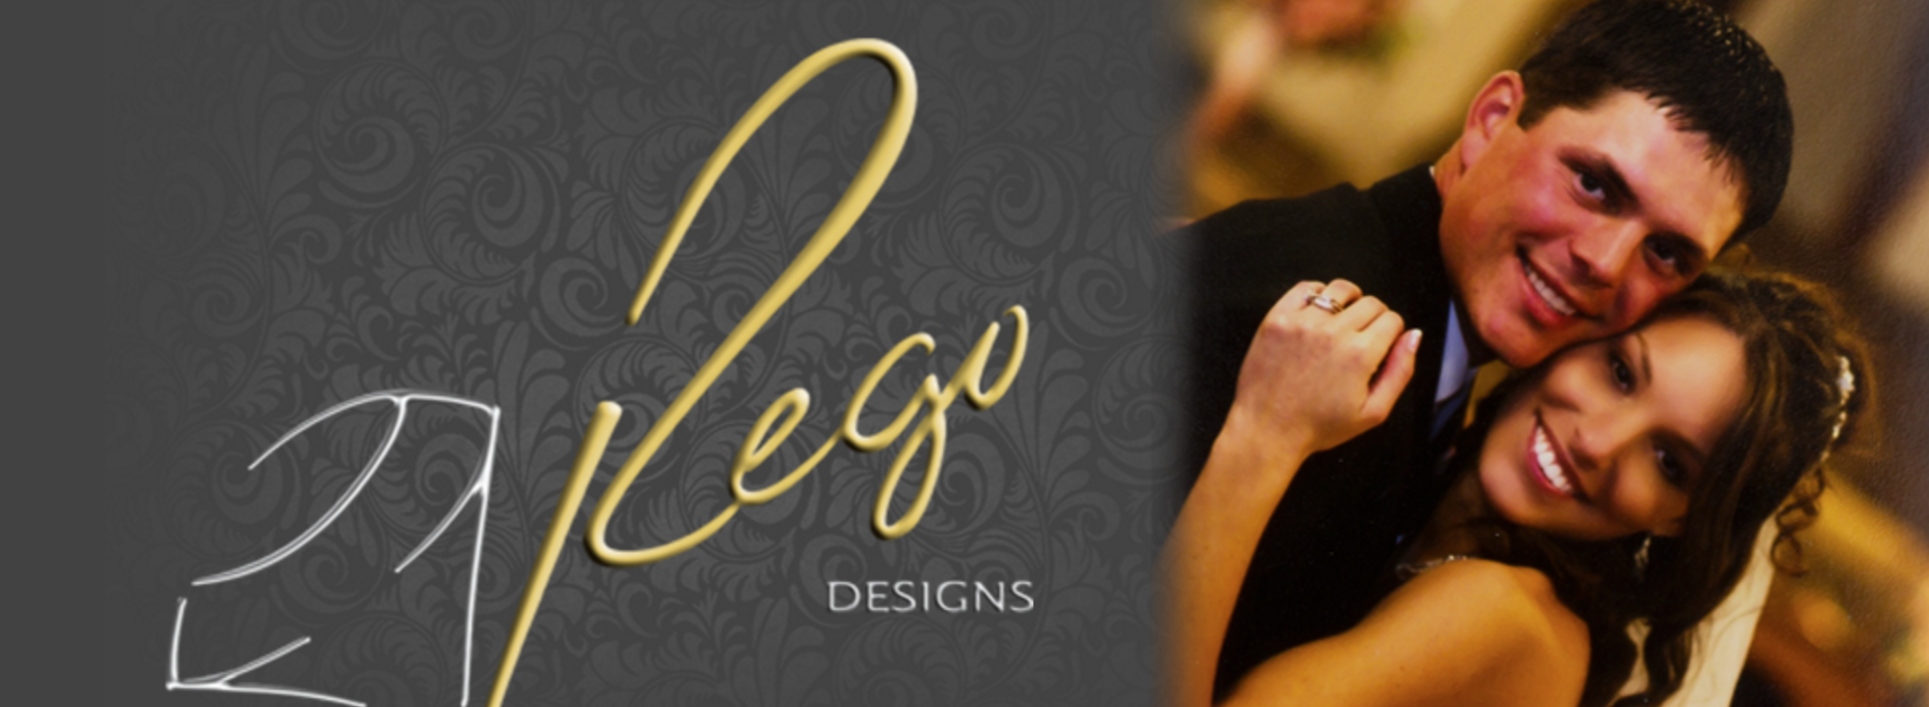 David Arlen Jewelers Rego Designs